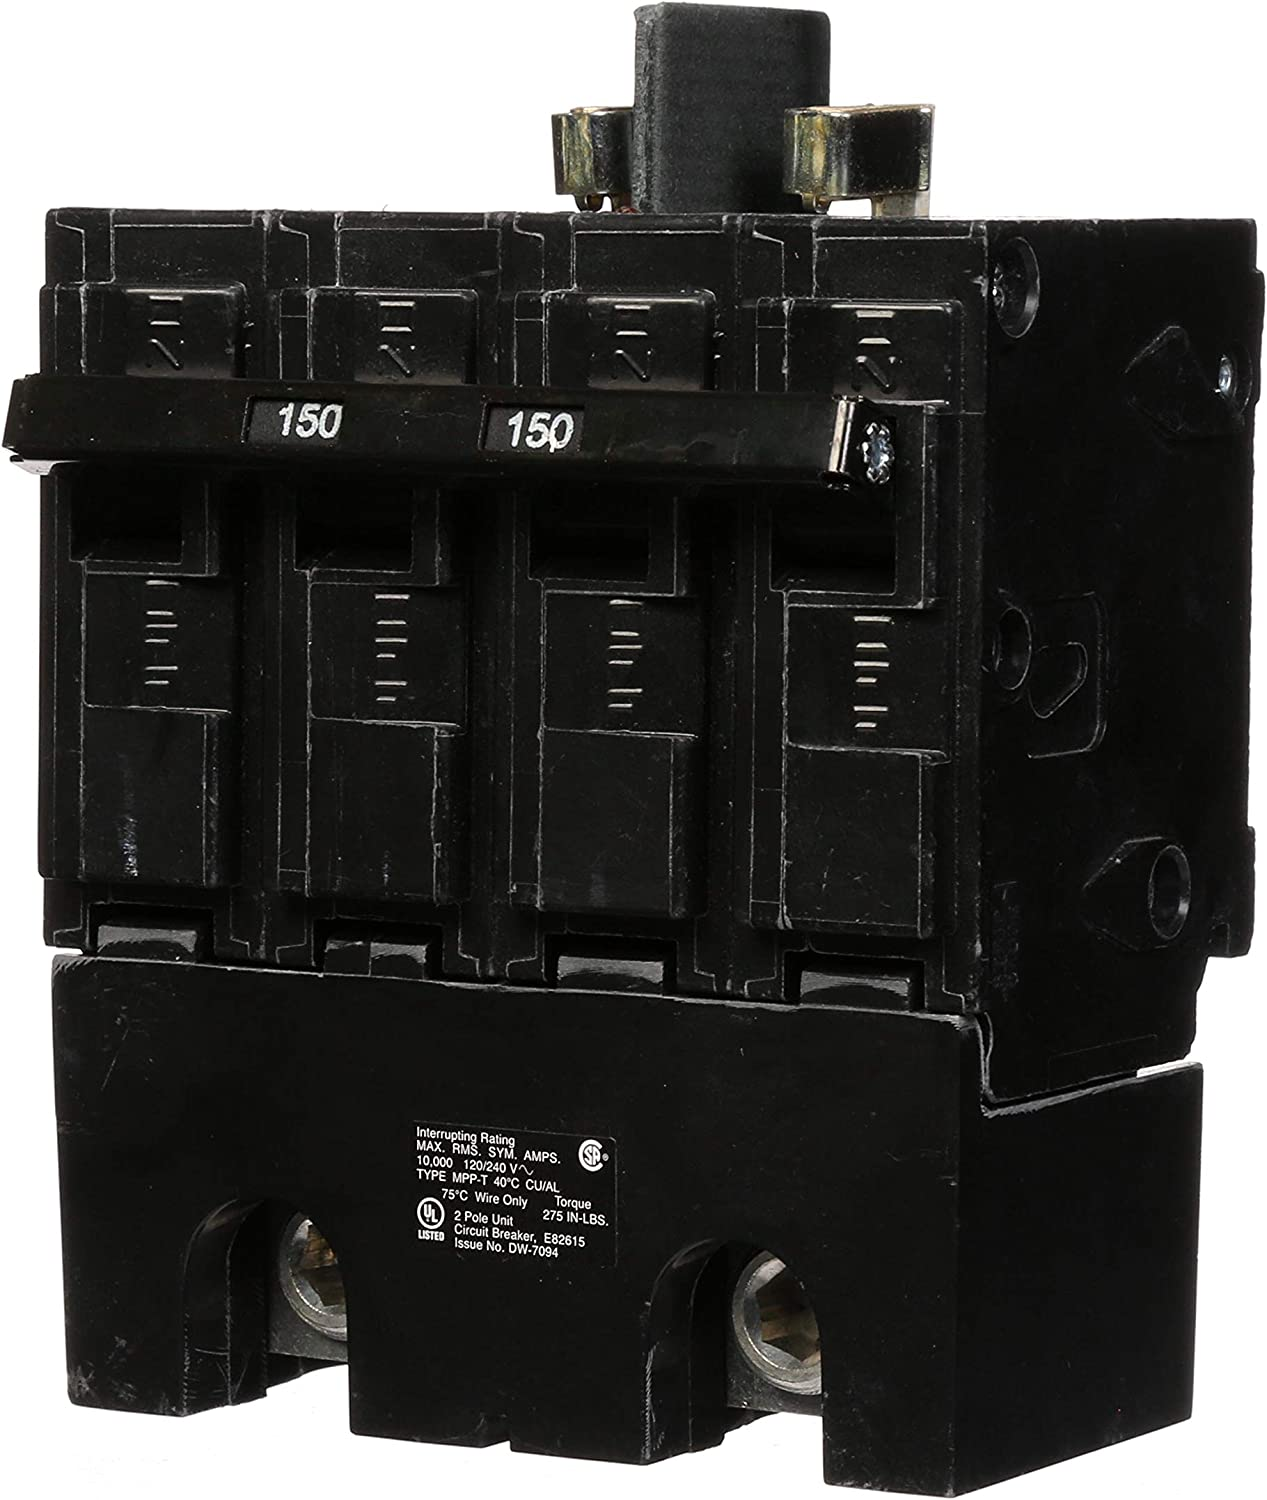 Murray MPP2150 120/240-Volt 4-pole type MPP 150-Amp Main Breaker 81SBuq4rogLSL1500_